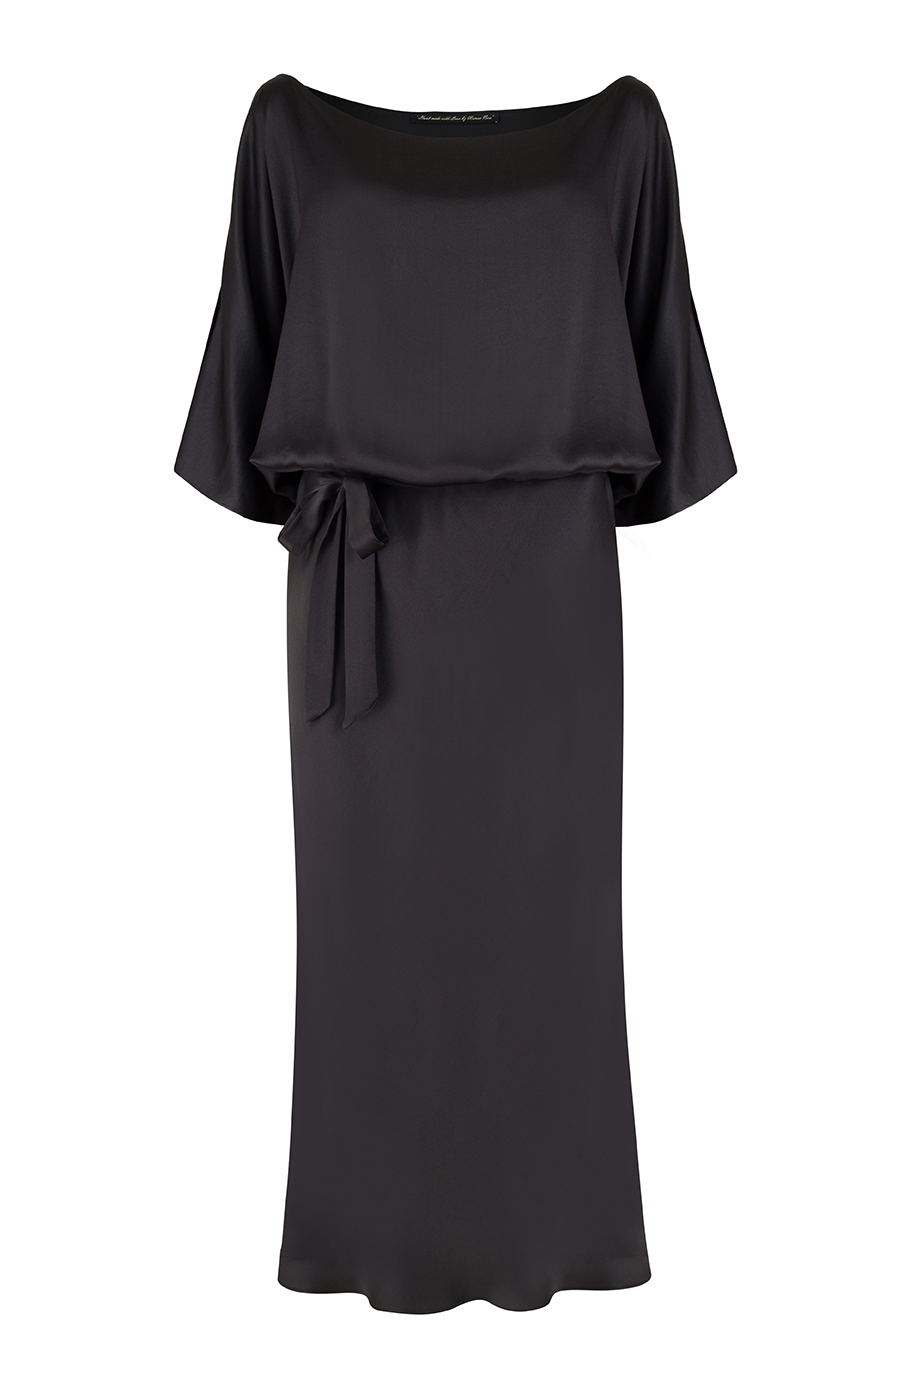 Melania Dress by Monica Nera on curated-crowd.com